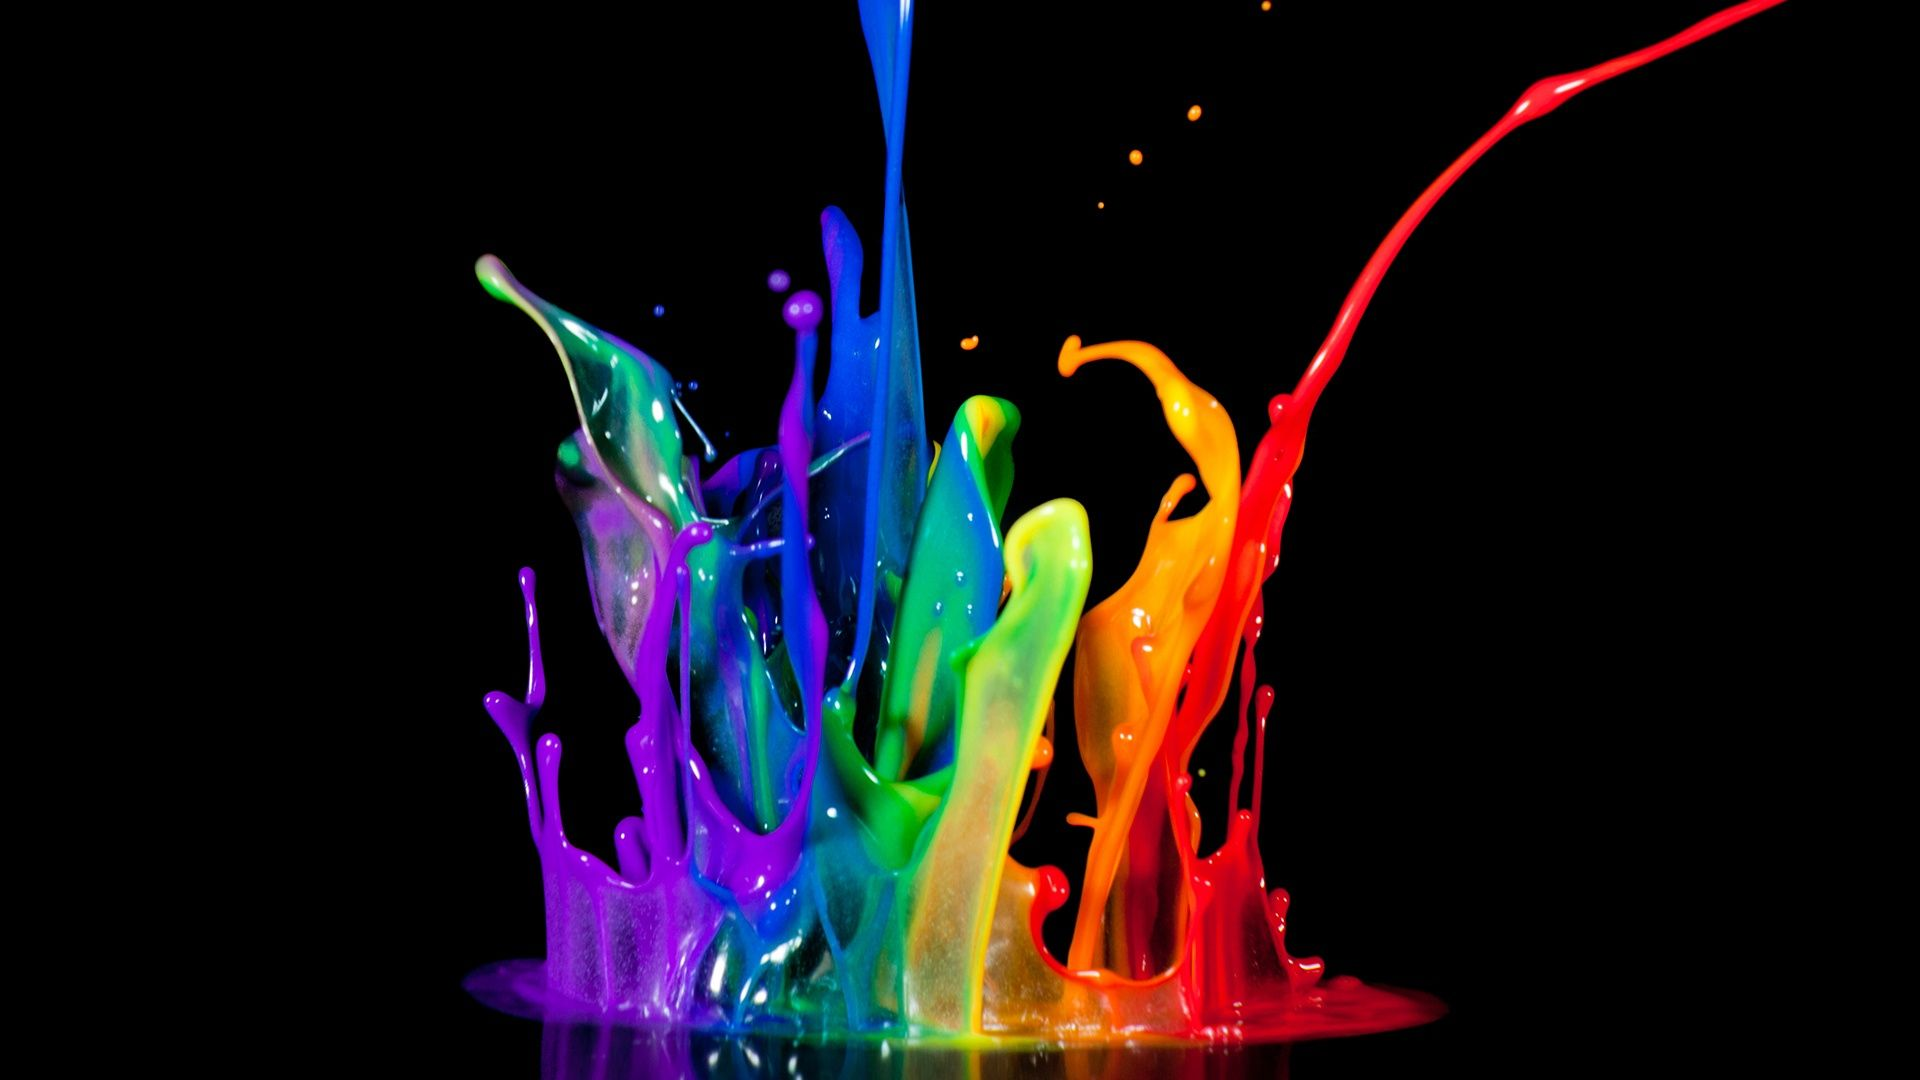 Colorful Hd Wallpaper 1920x1080 Id 23254 Colorful Wallpaper Painting Wallpaper Rainbow Wallpaper